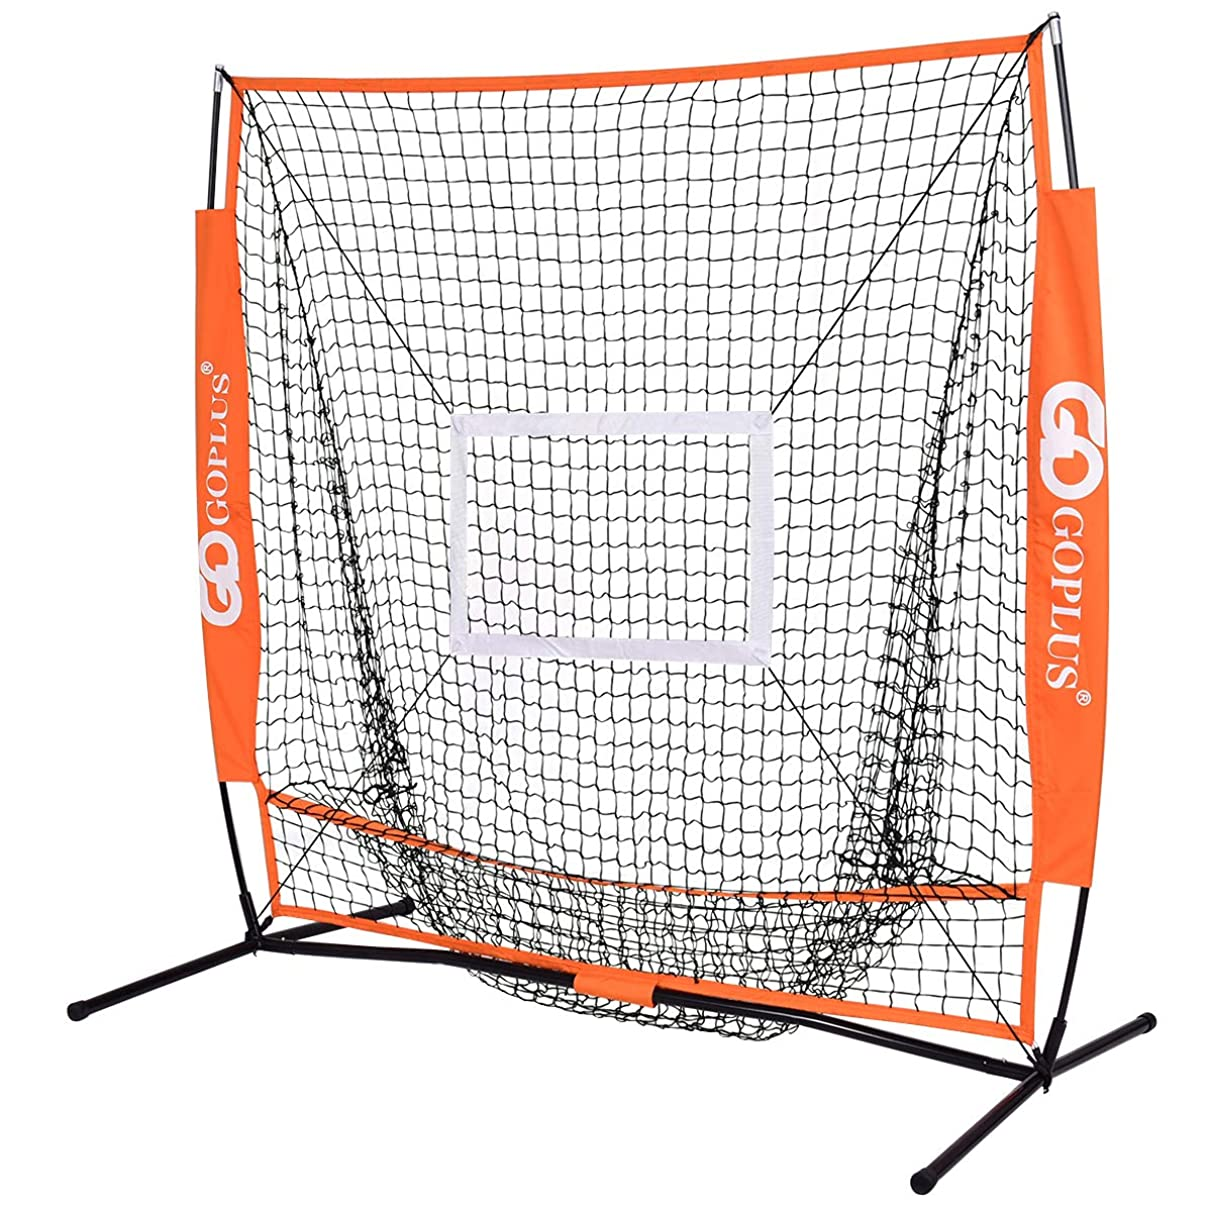 GYMAX Practice Net, 5'×5' Portable Baseball & Softball Hitting with Bow Frame and Carry Bag, for Pitching, Batting, Fielding